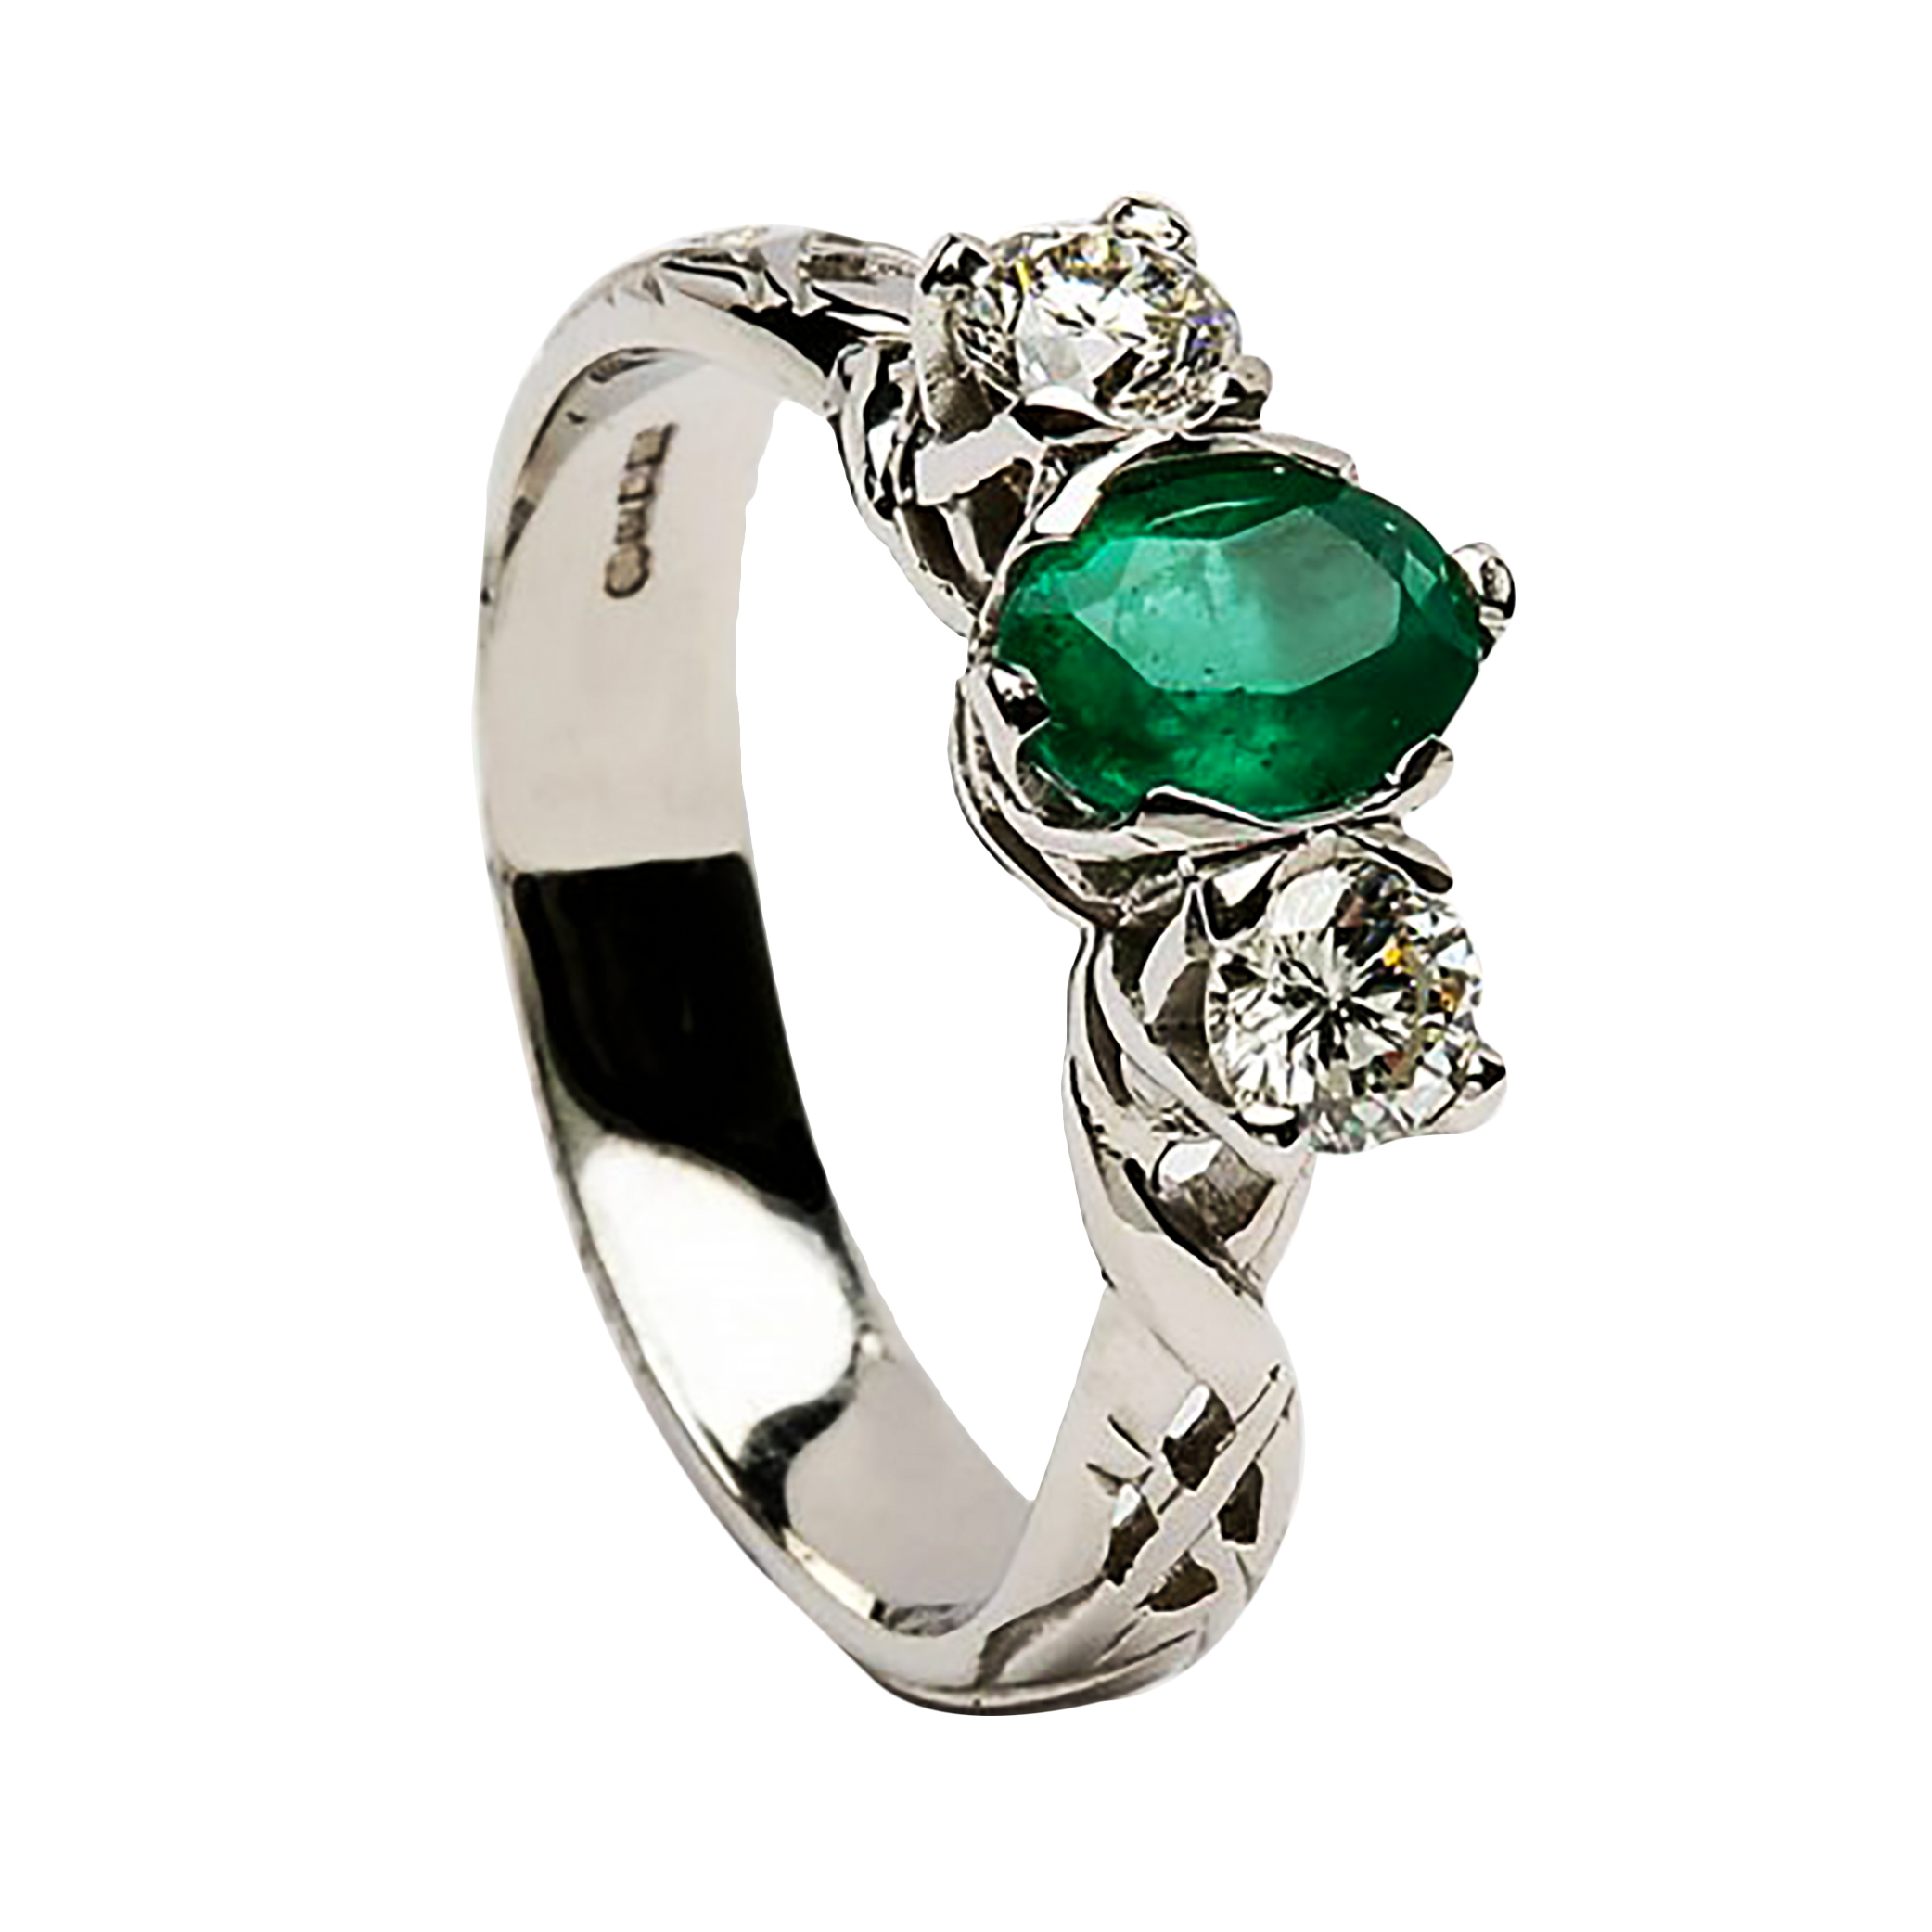 band emerald channel wedding ring anniversary catherine set sterling created simulated pin and in white sapphire malandrino